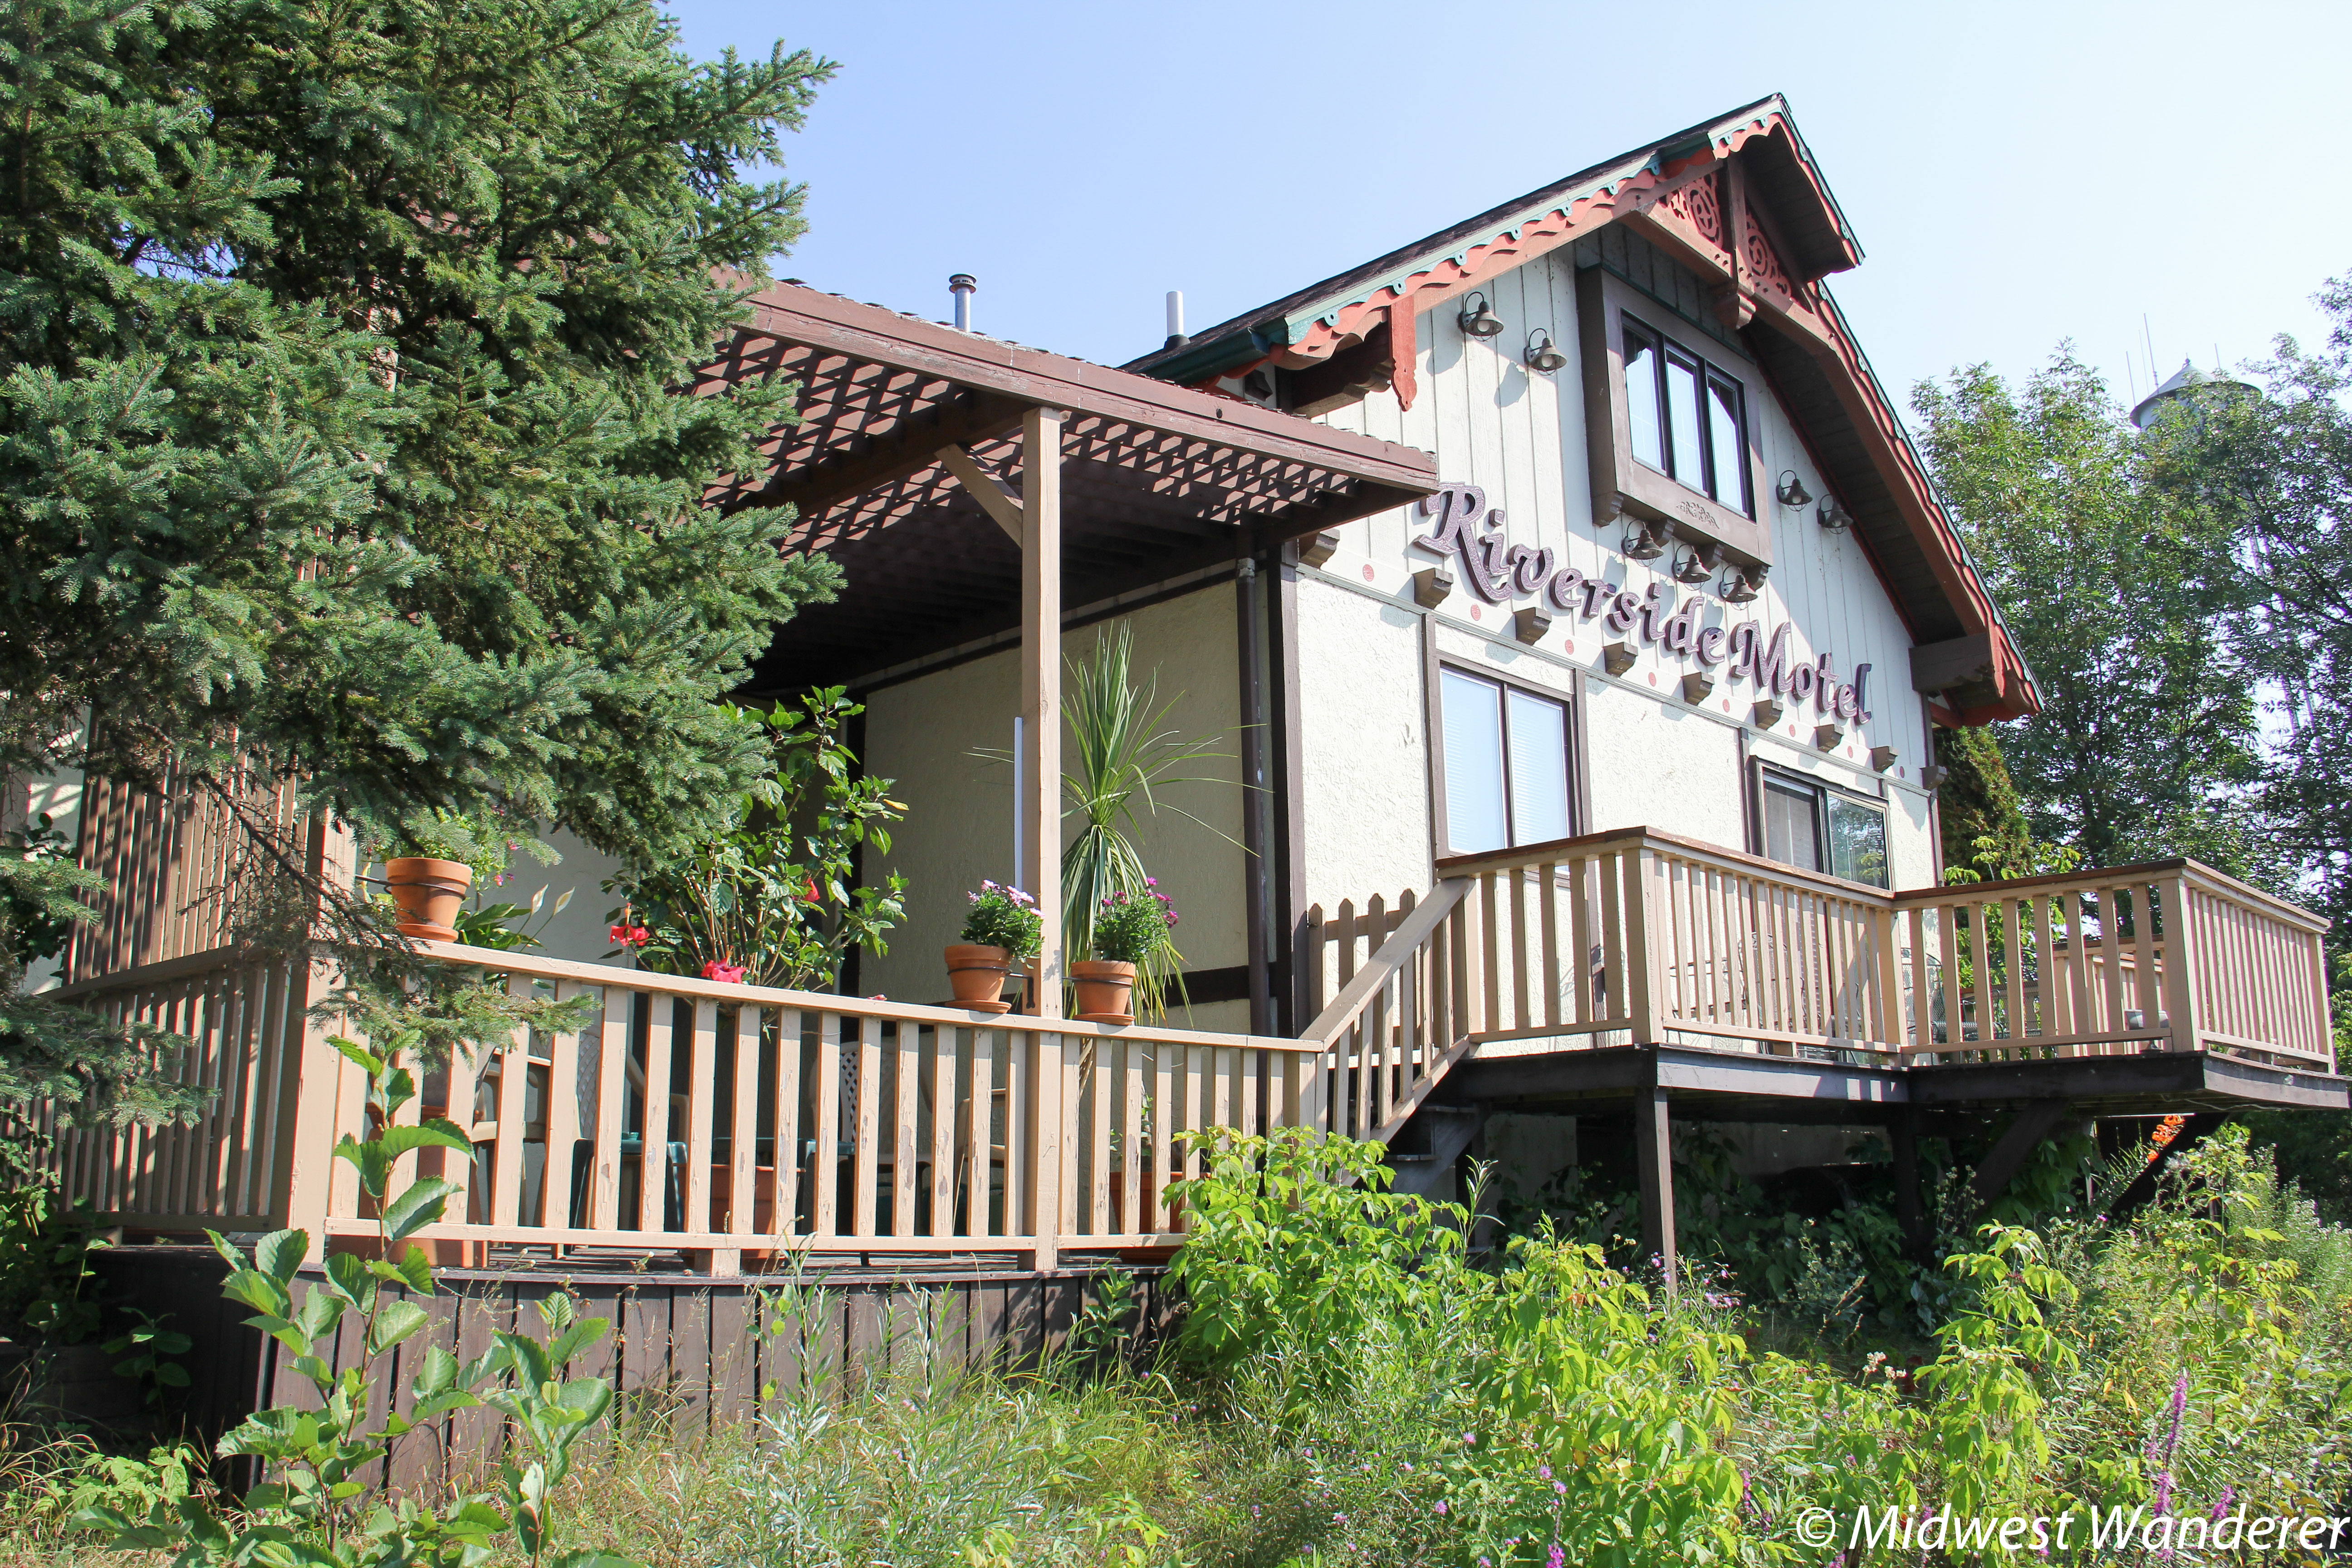 The Riverside Motel: Relaxing Wisconsin Northwoods Setting near Attractions